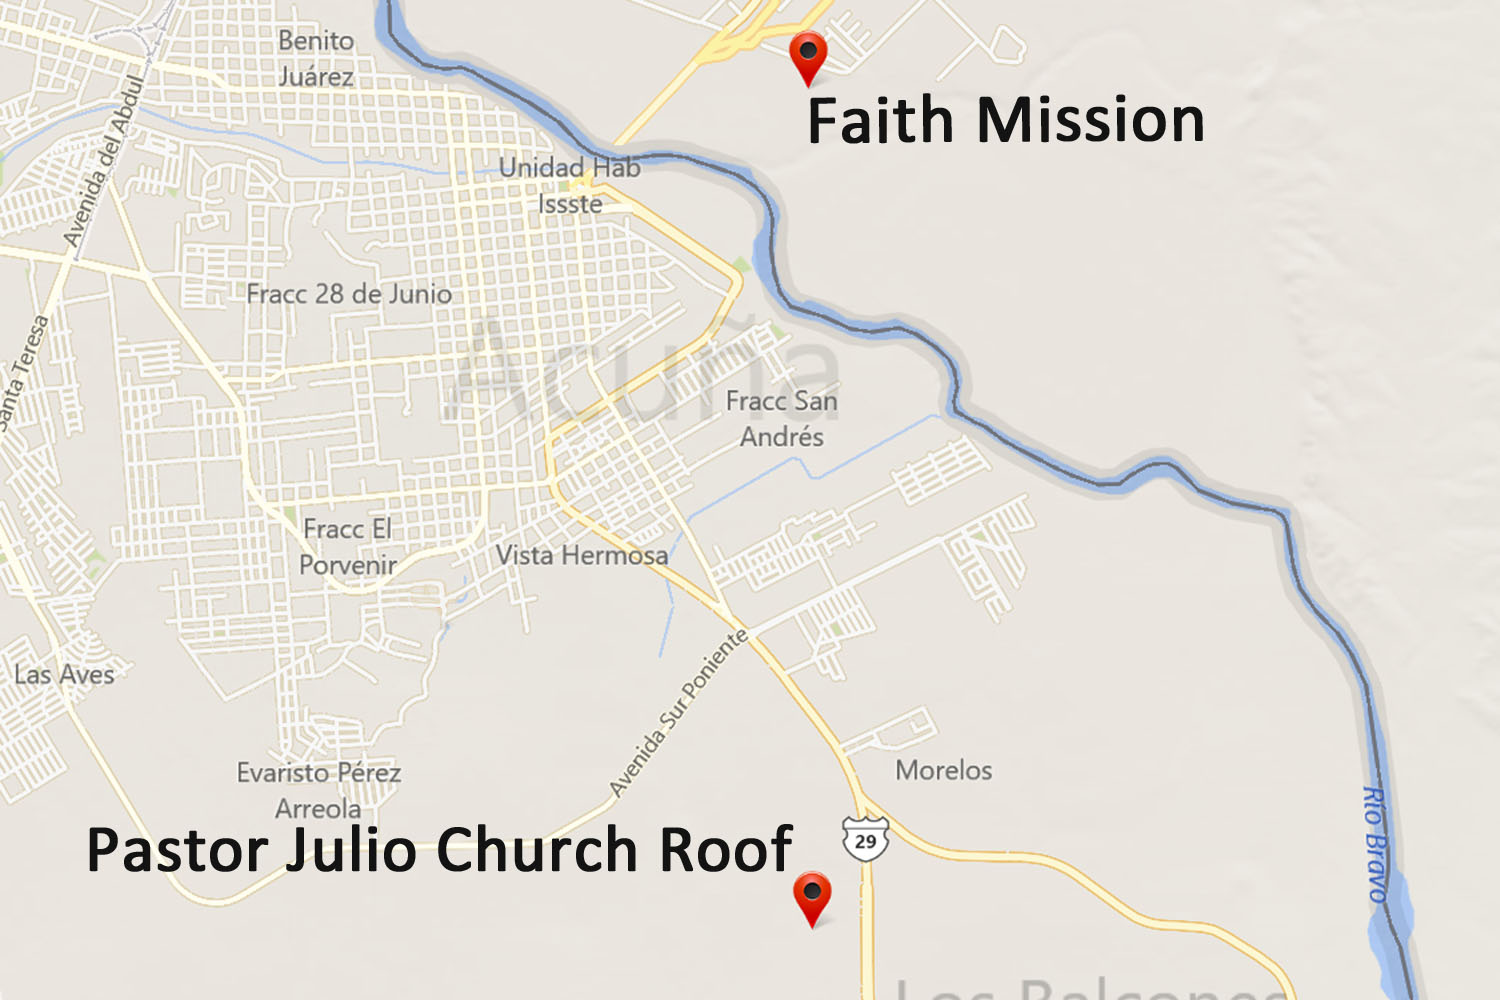 Pastor Julio Church Roof Map